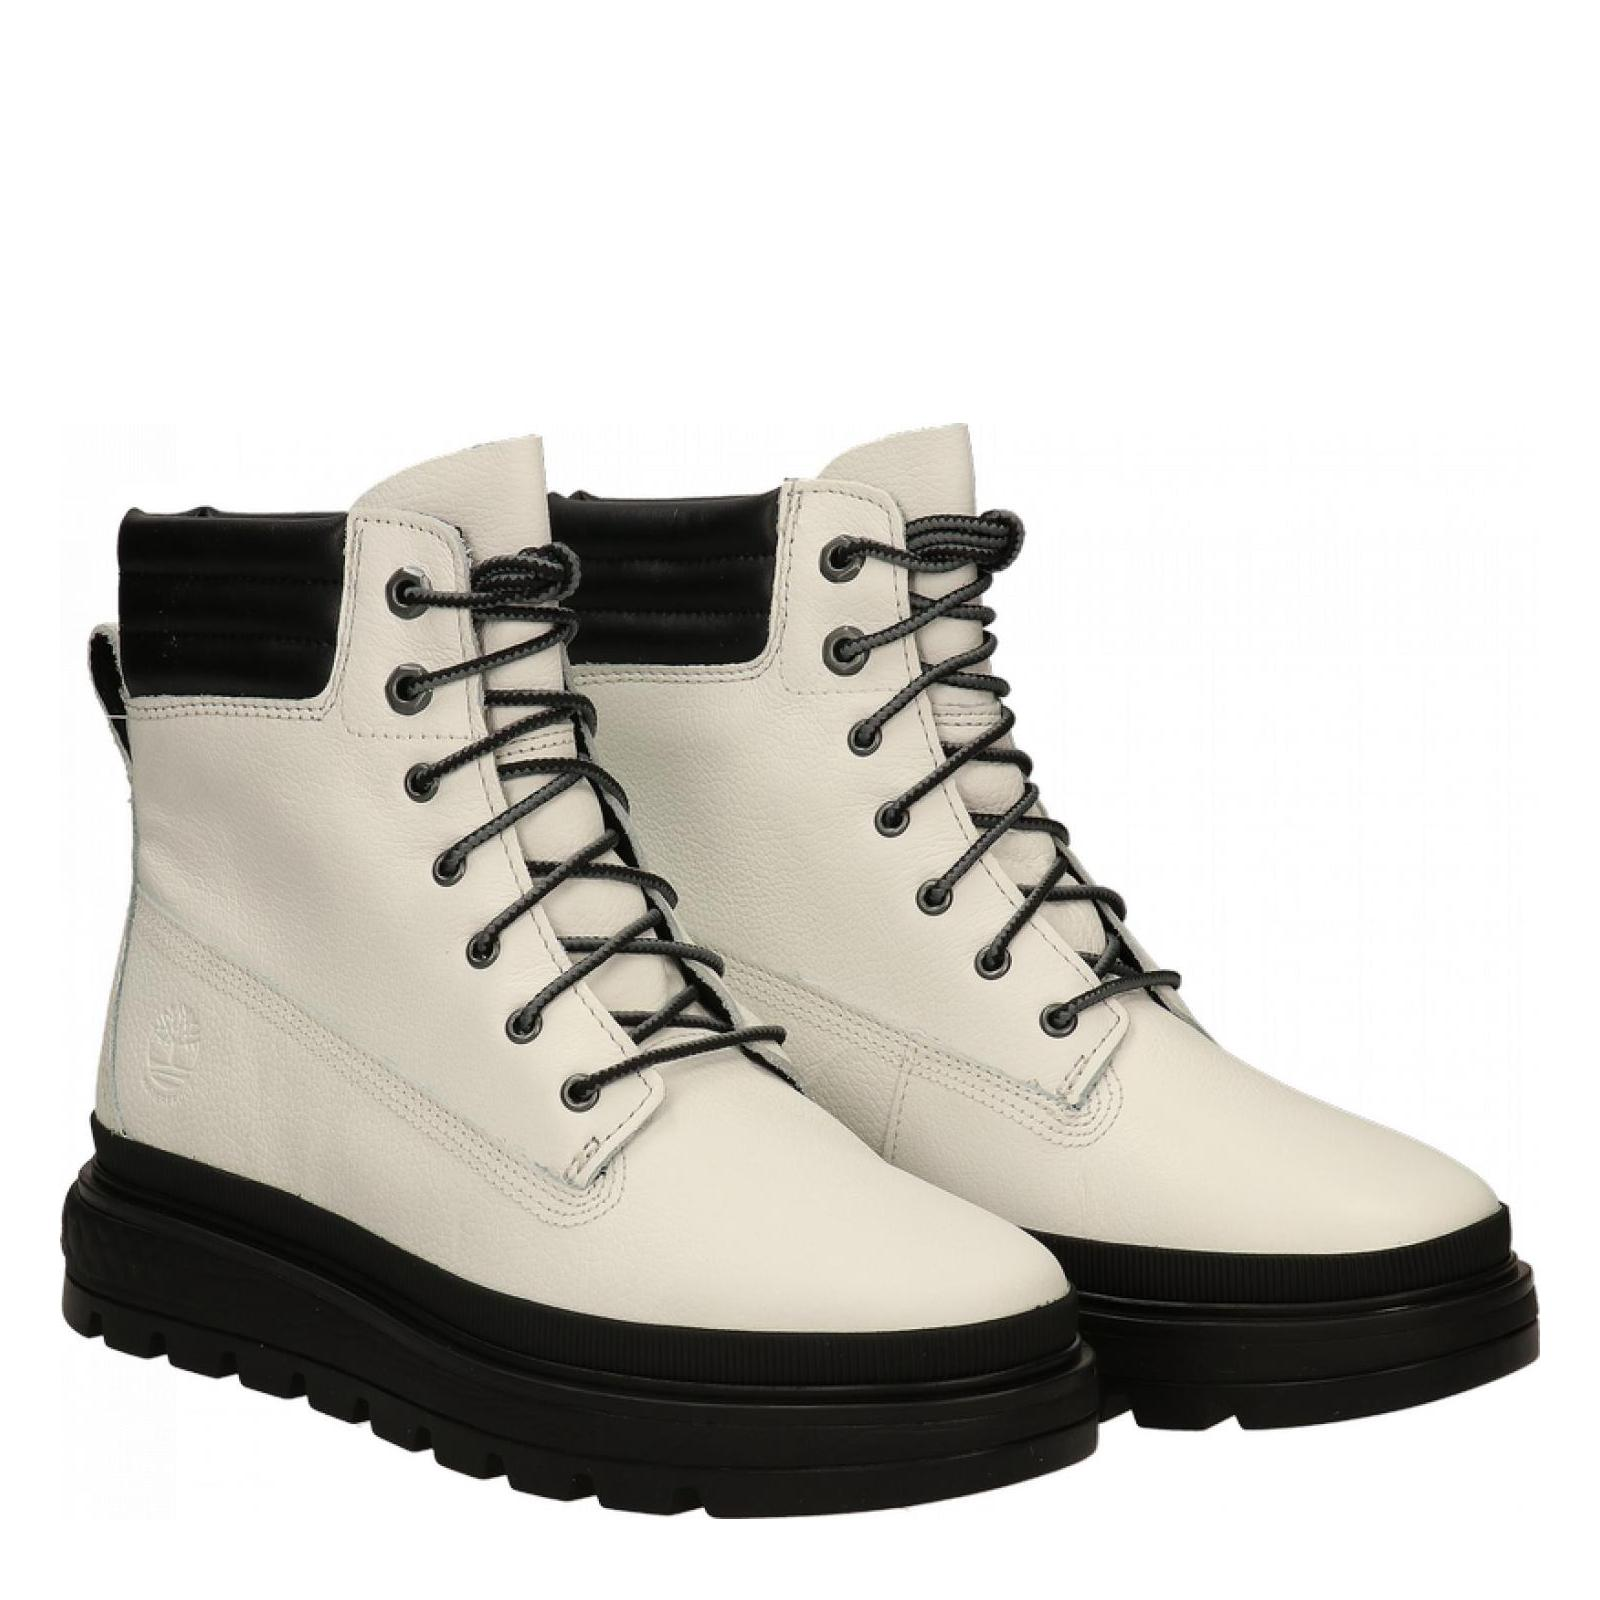 RAY CITY 6 IN BOOT WP